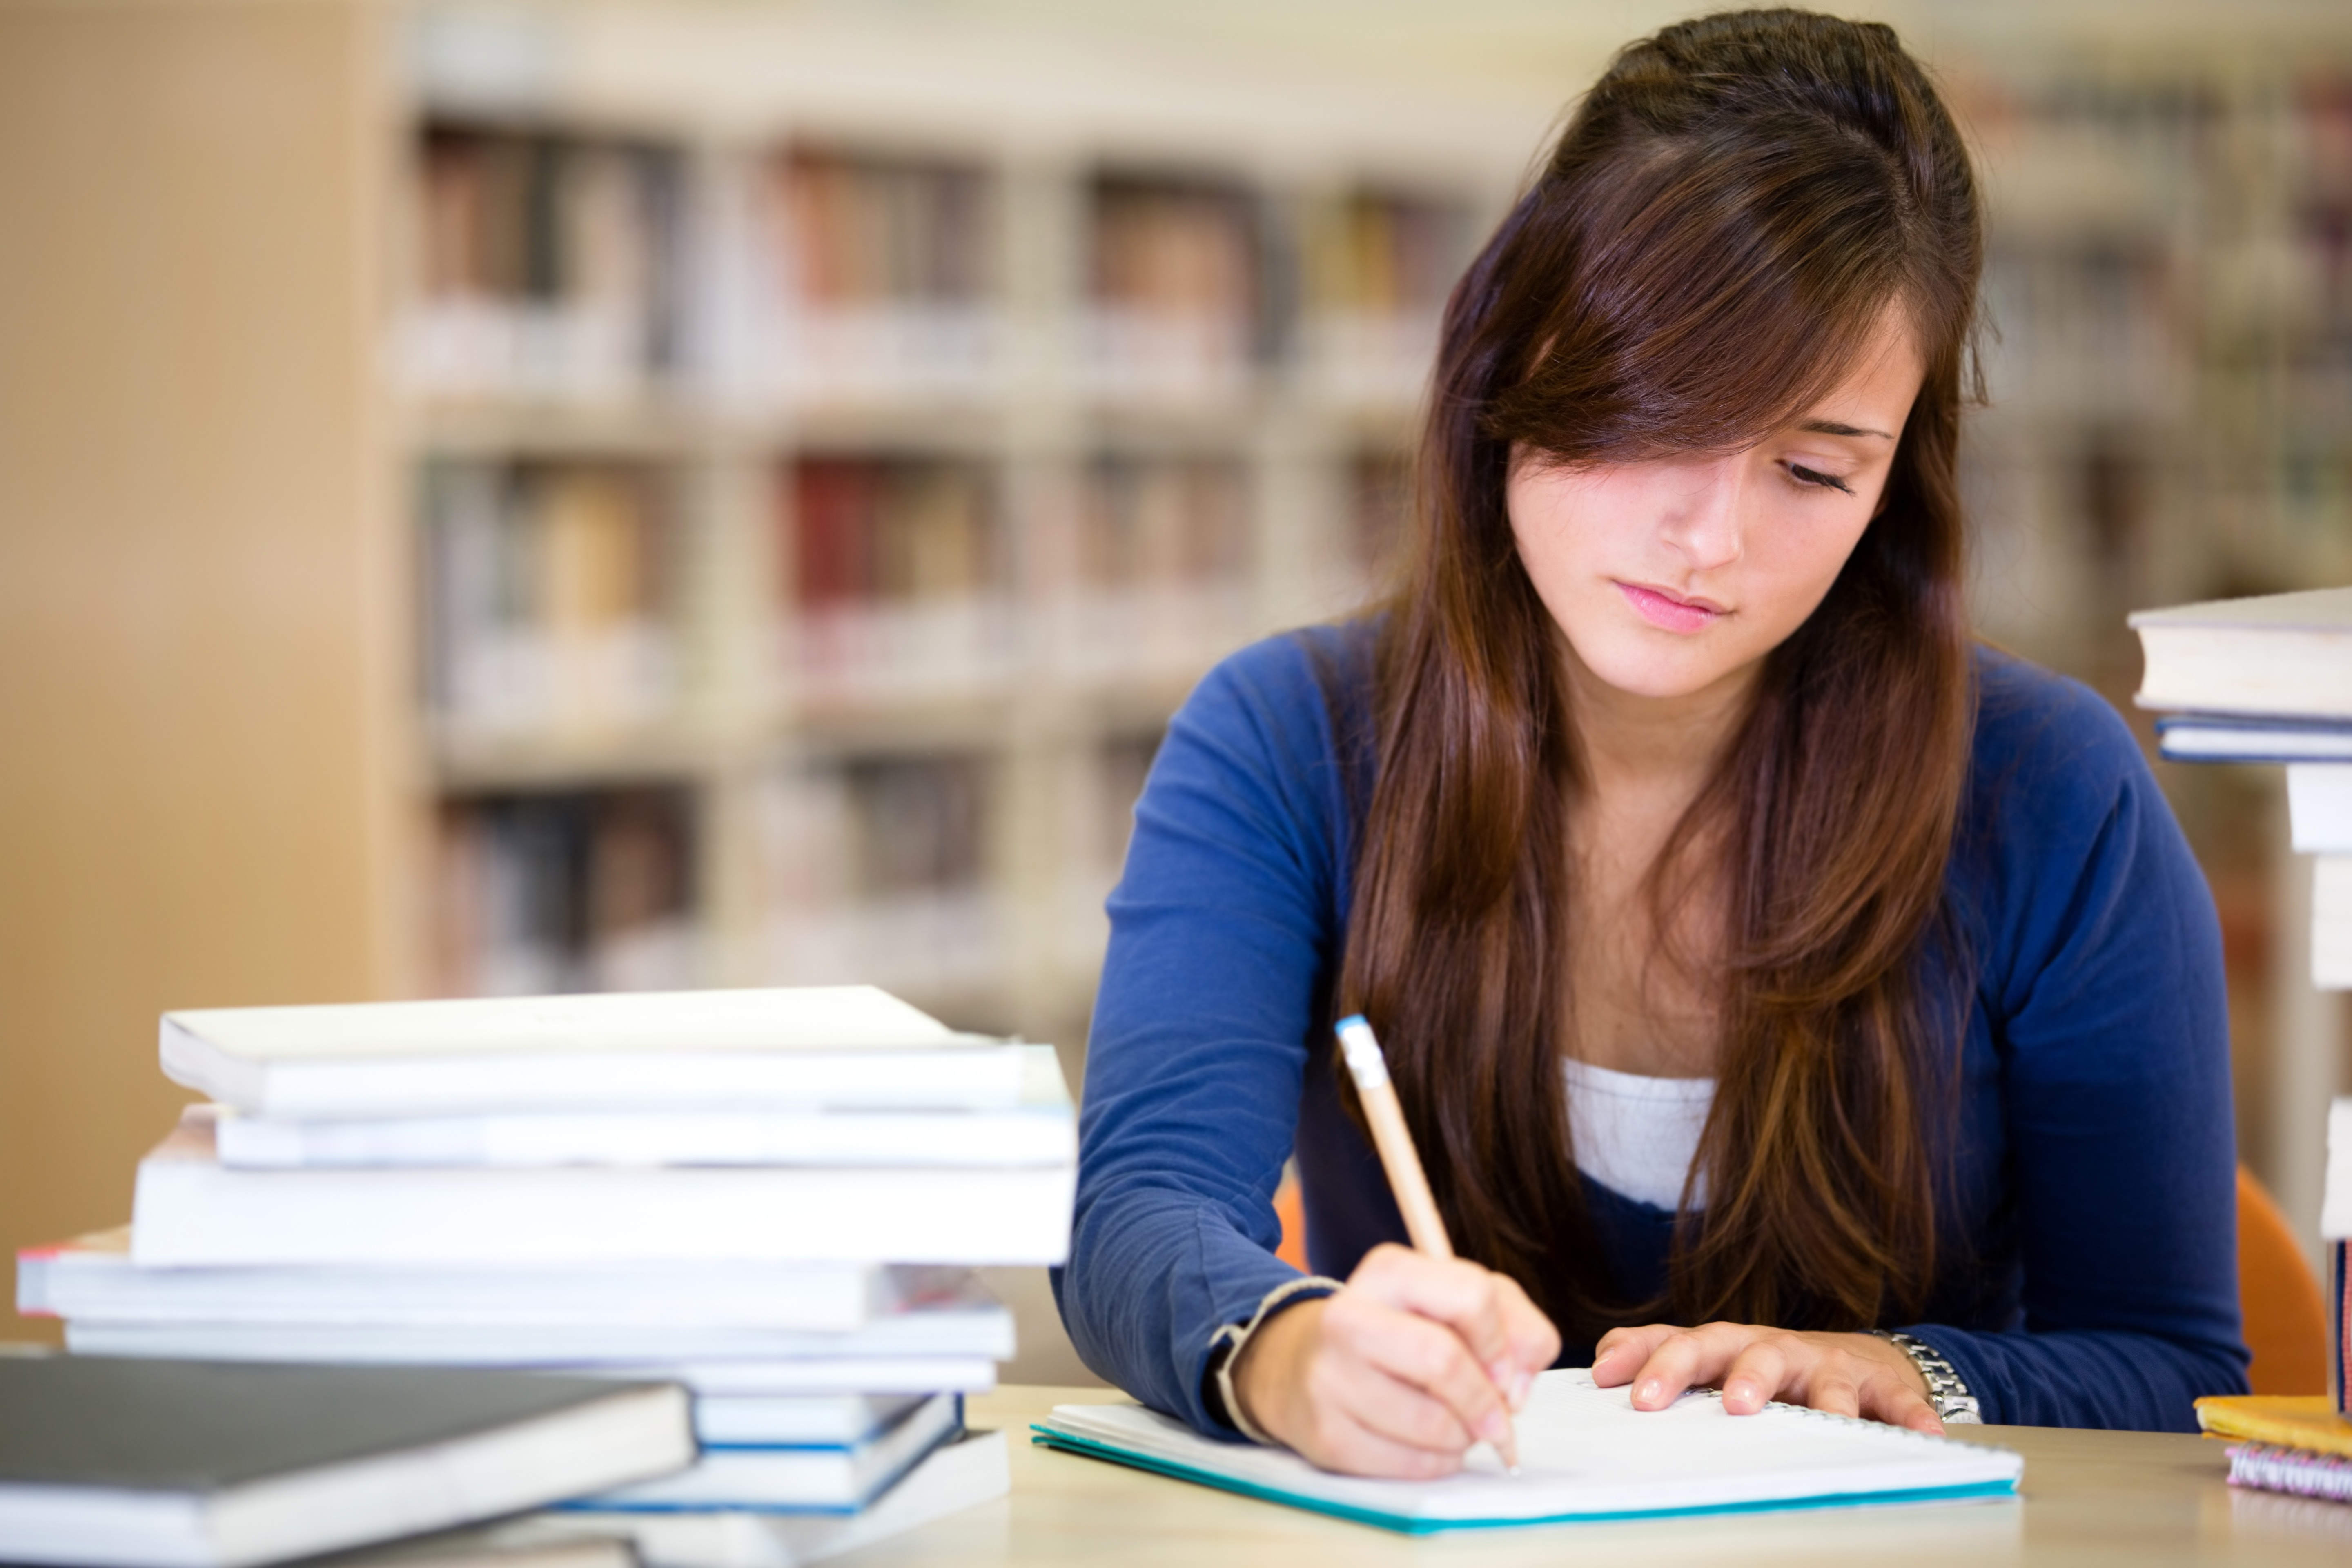 Woman studying at the library with books